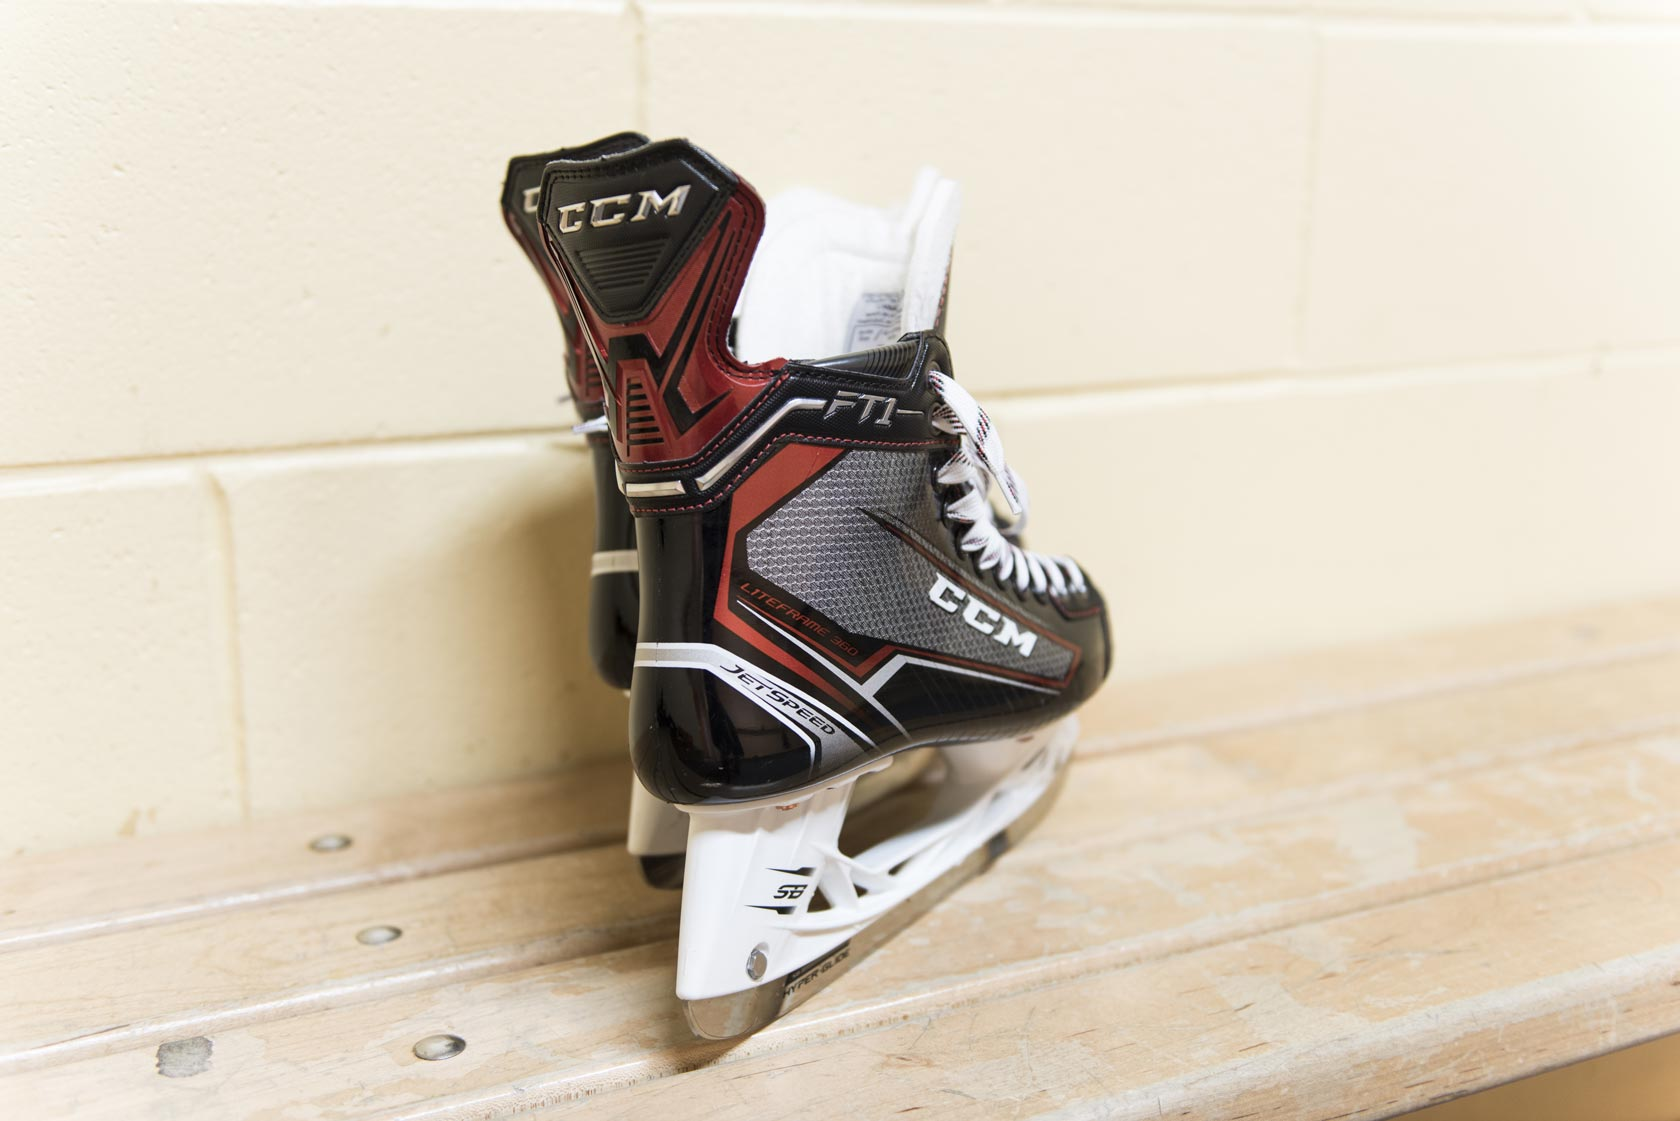 CCM JetSpeed FT1 Hockey Skates 360 degree tapered fit | Source For Sports